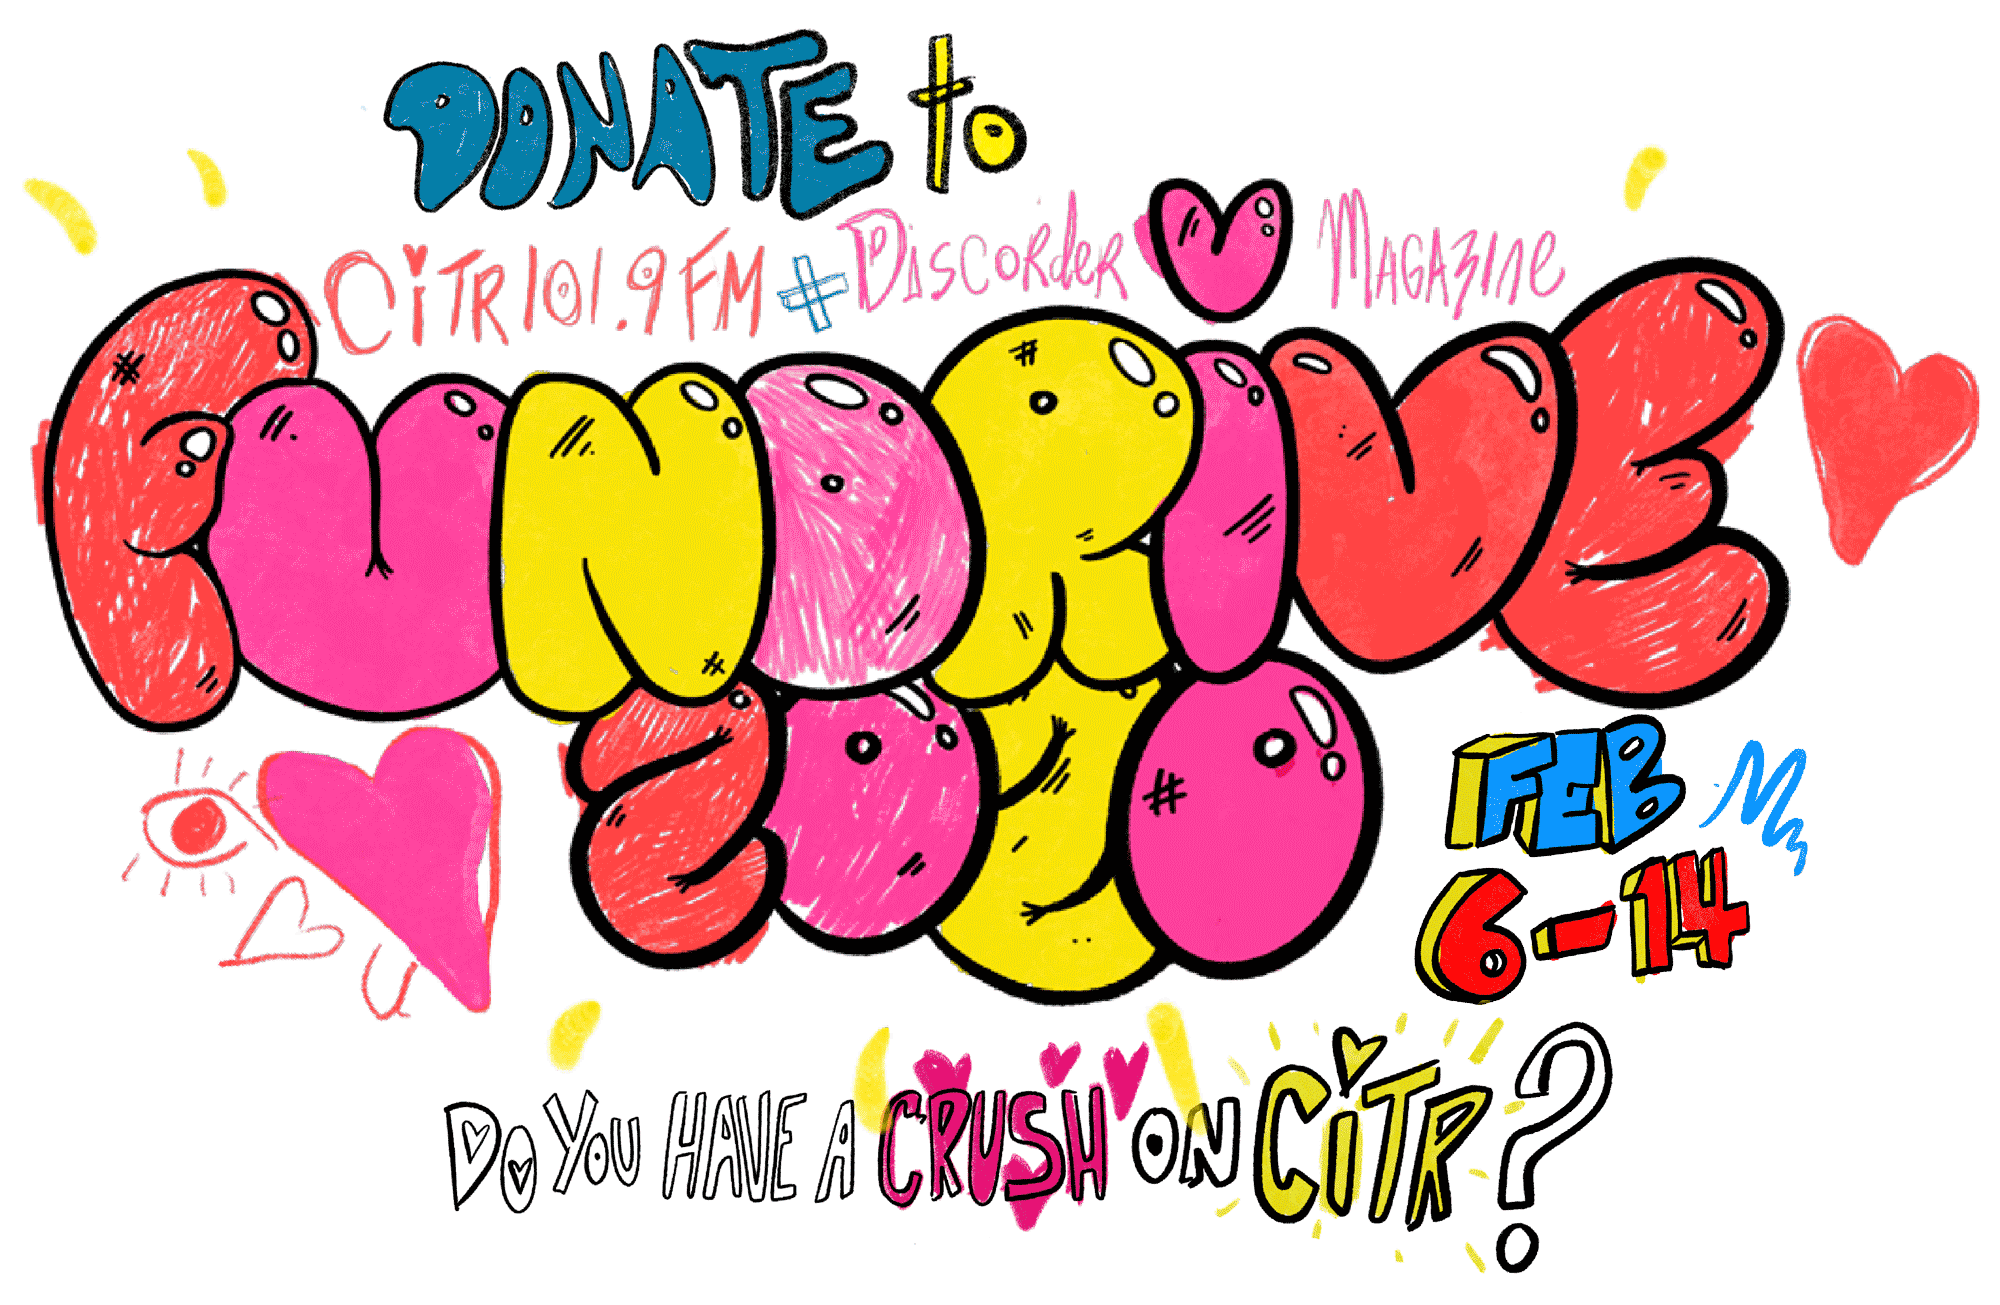 Fundrive 2020! Do you have a crush on CiTR?